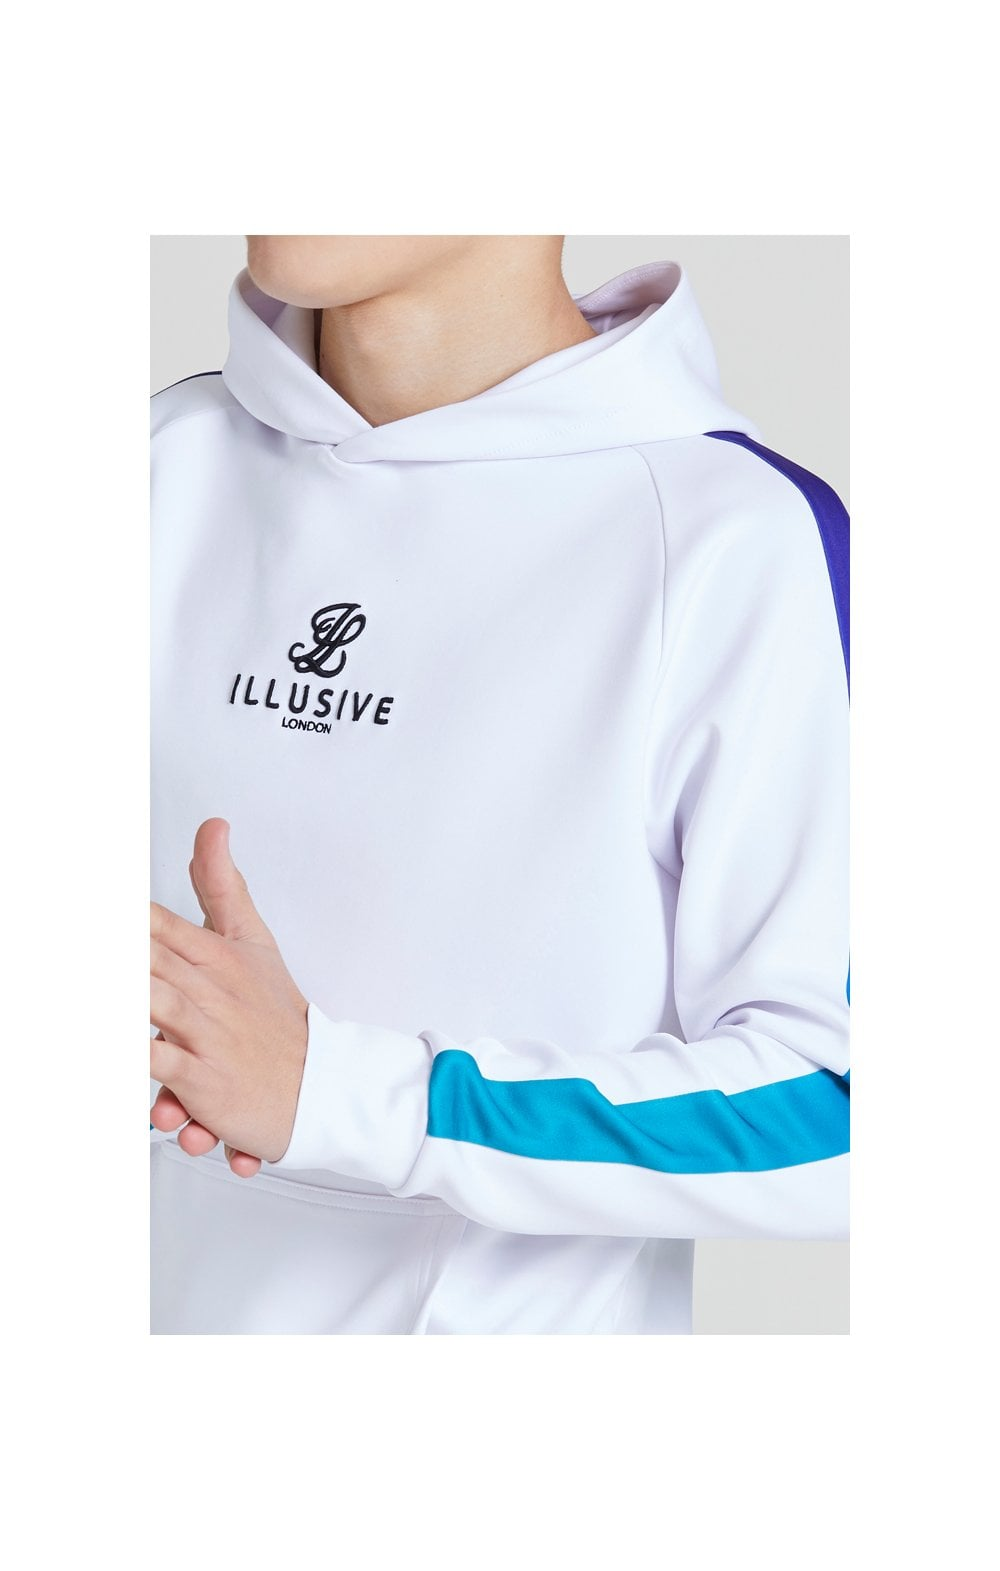 Load image into Gallery viewer, Illusive London Fade Panel Overhead Hoodie - White , Purple & Teal Green (1)